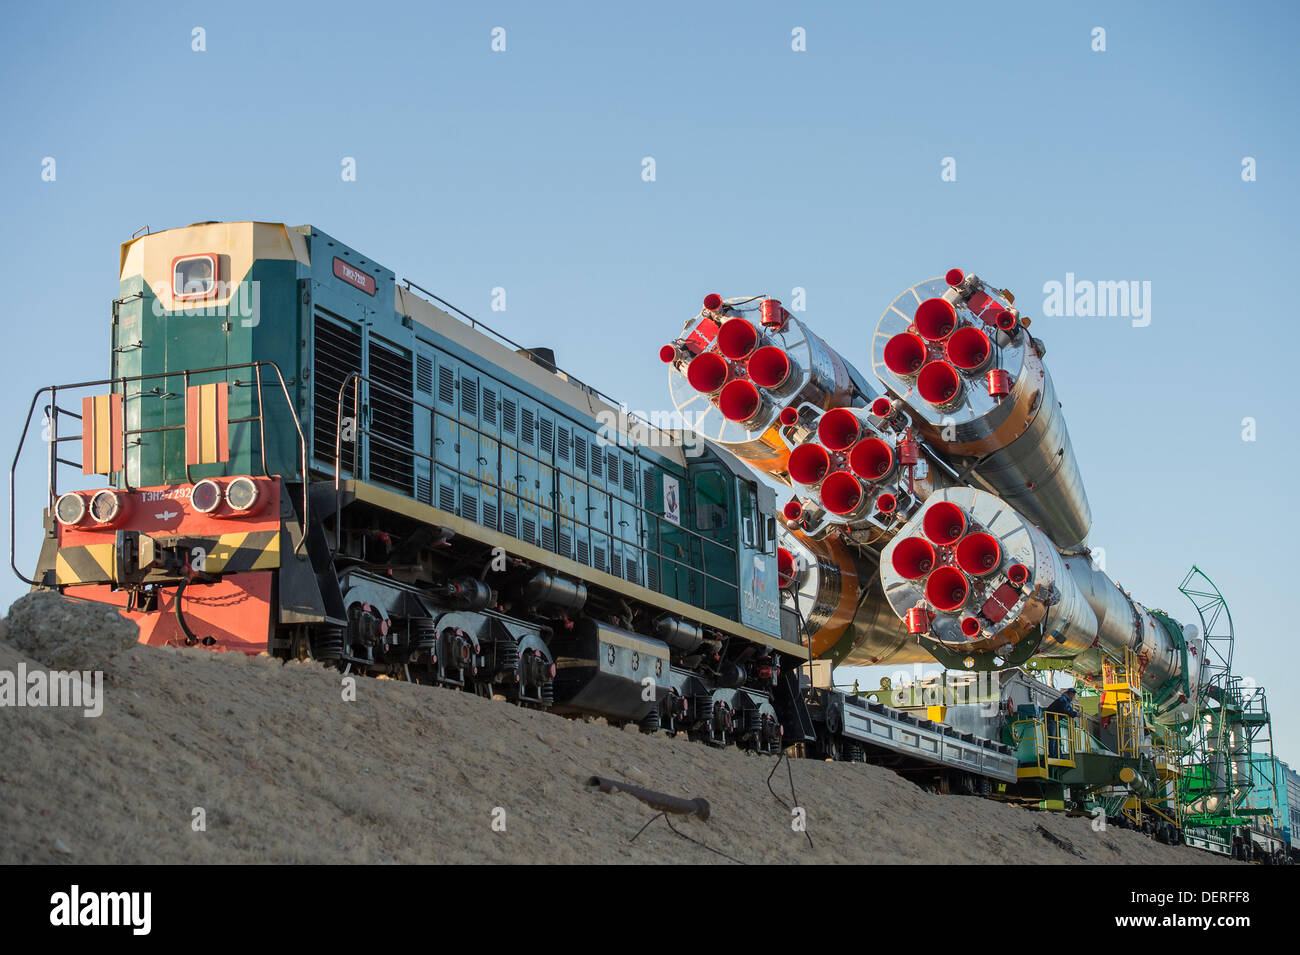 The Russian Soyuz rocket is rolled out to the launch pad by train at the Baikonur Cosmodrome September 23, 2013 in Baikonur, Kazakhstan. Launch of the rocket carrying the Expedition 37 crew to the International Space Station is scheduled for September 26. - Stock Image